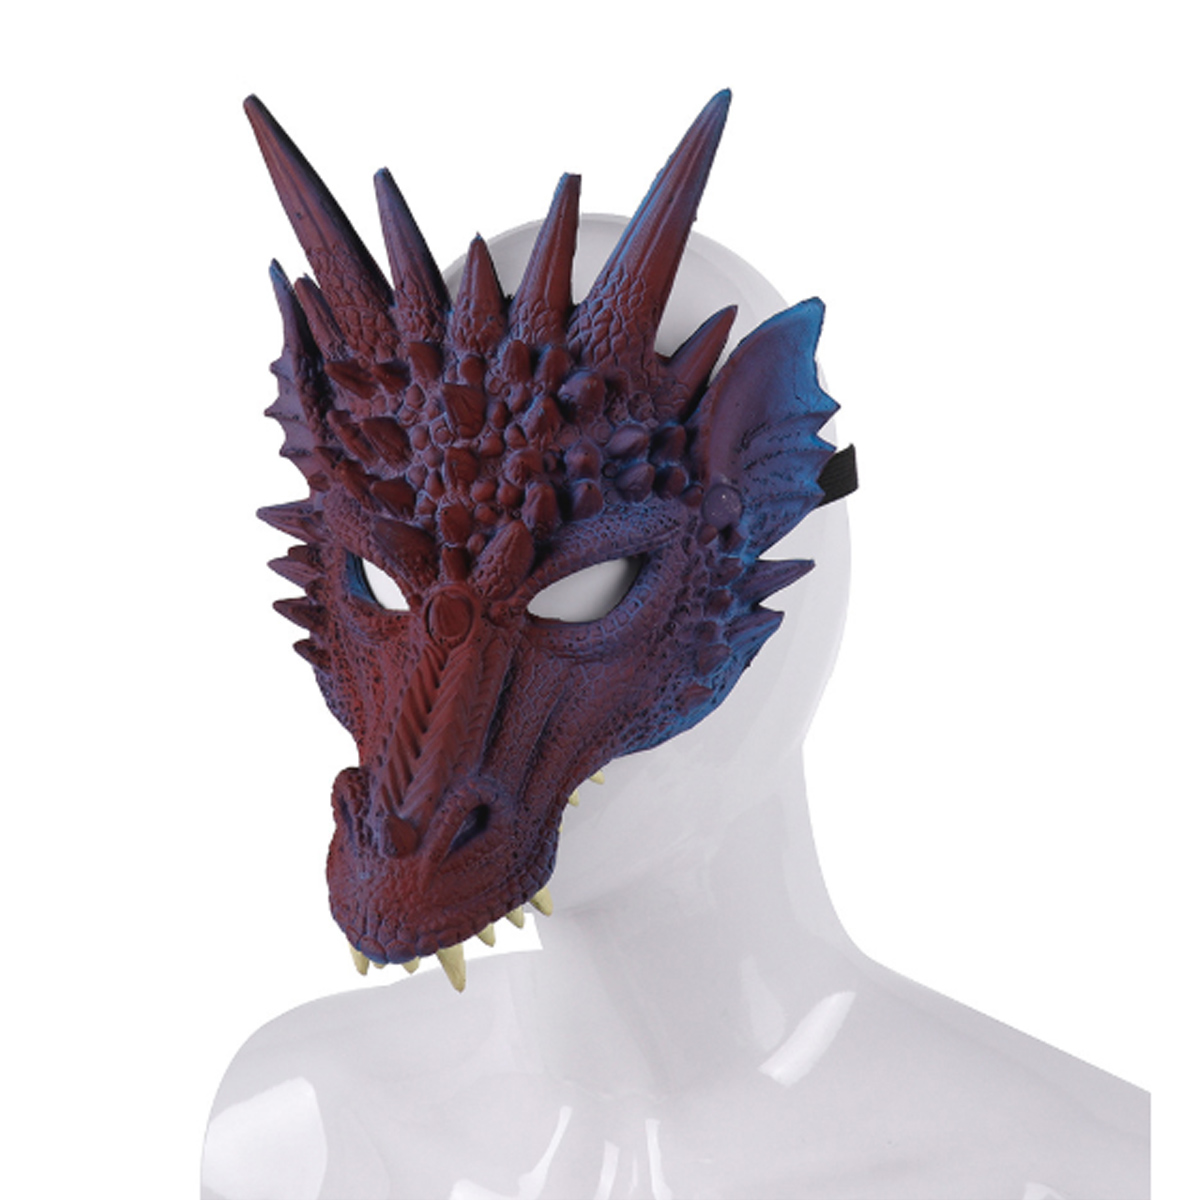 3D Animal Dragon Horror Mask Props Halloween Carnival Halloween